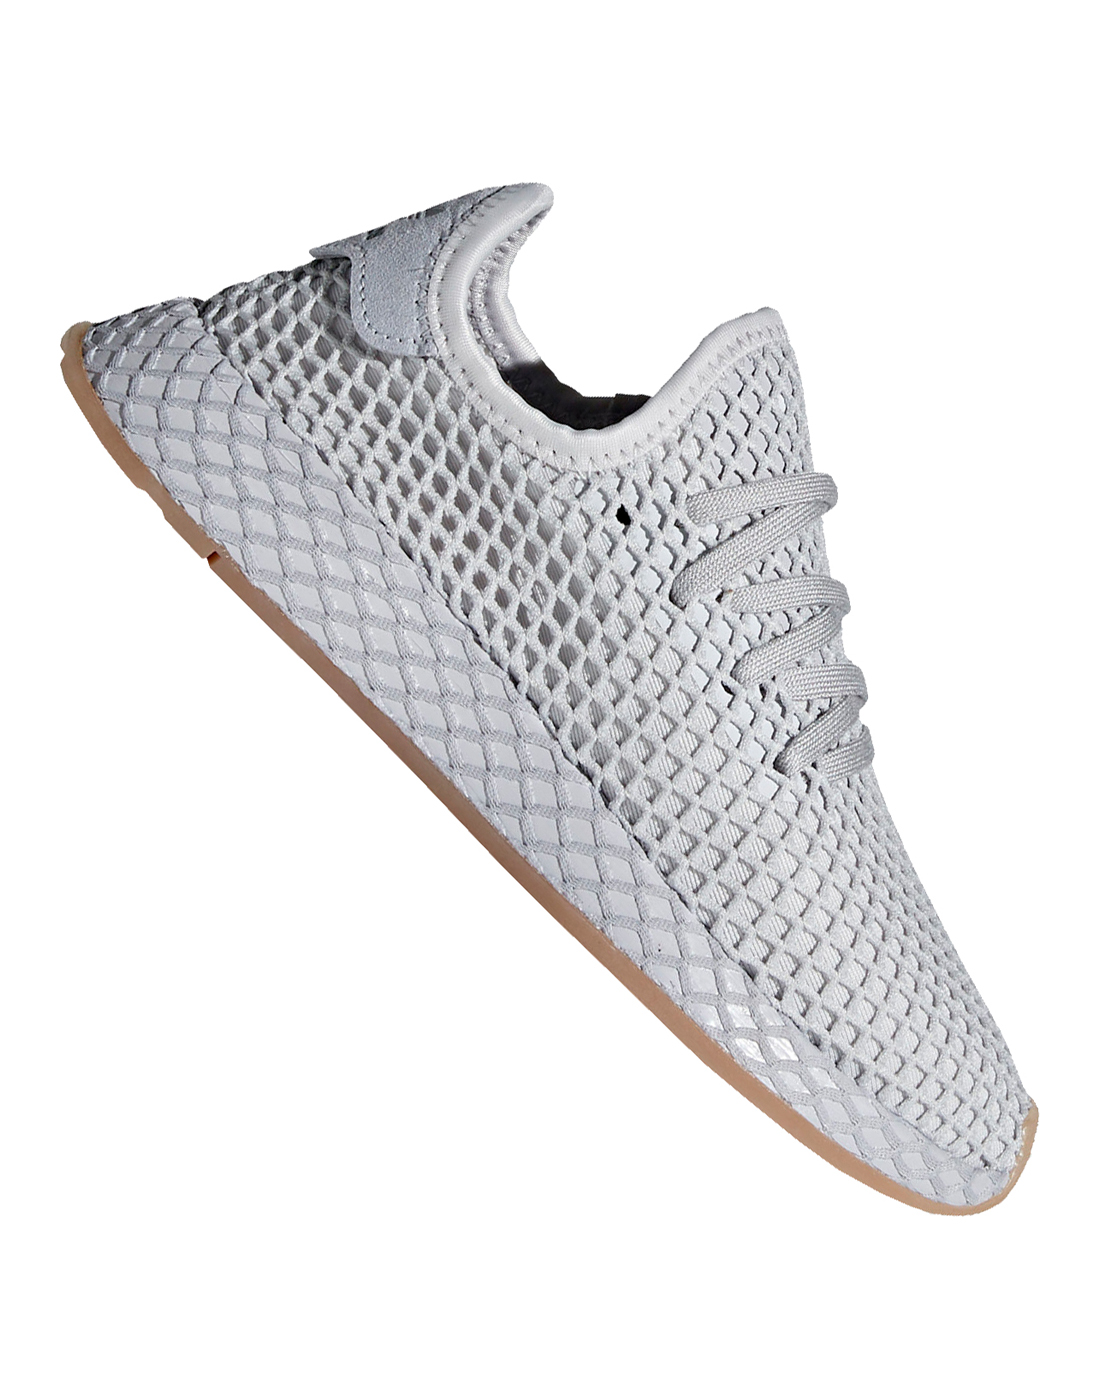 5f094a7eb9068 Kids adidas Originals Deerupt